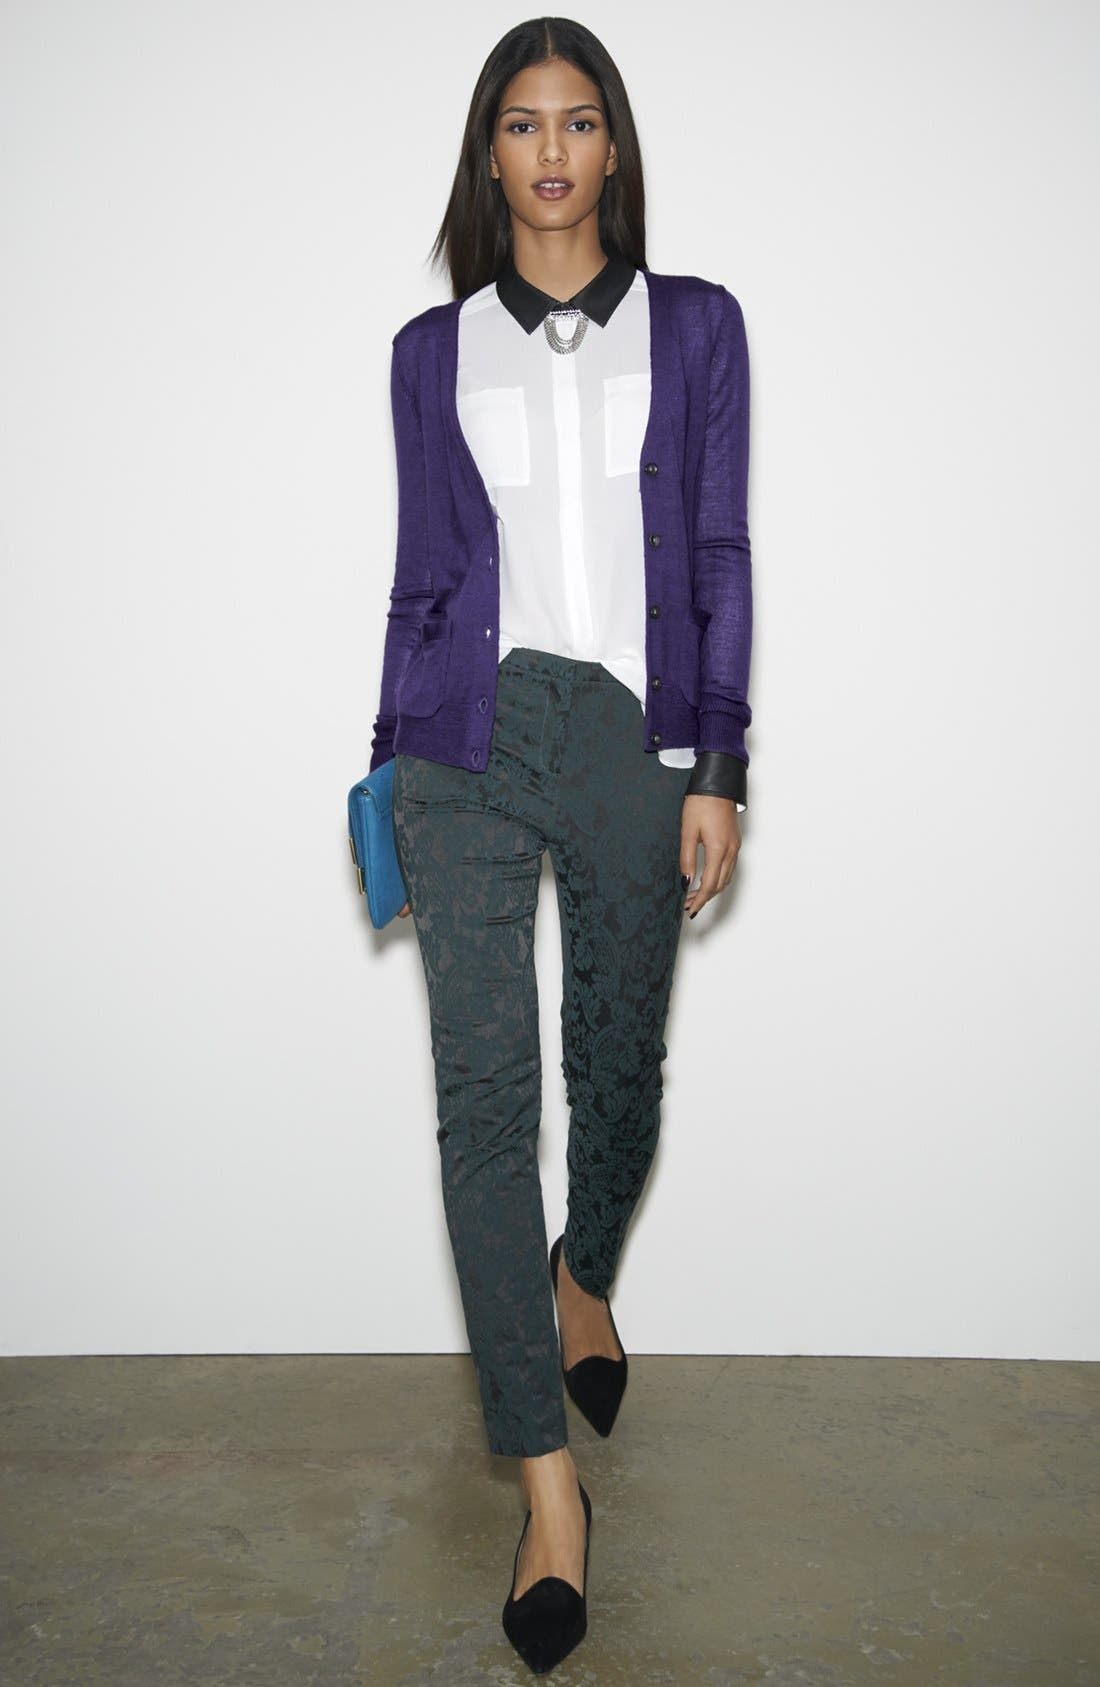 Main Image - Halogen® Cardigan, Blouse & Crop Pants